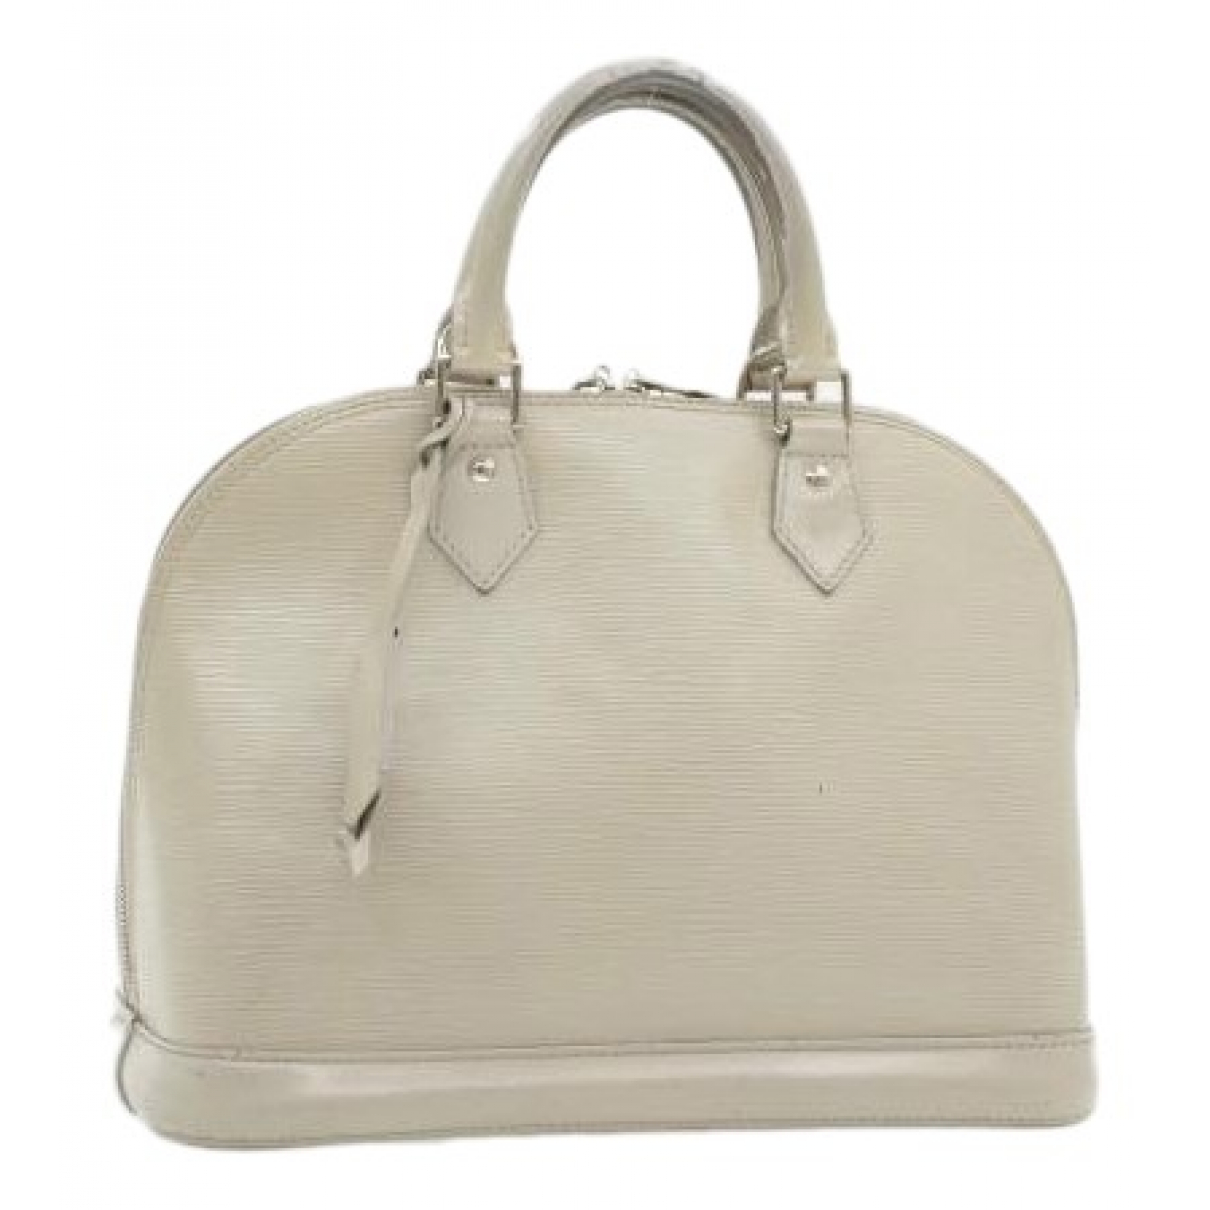 Louis Vuitton Alma Grey Leather handbag for Women N